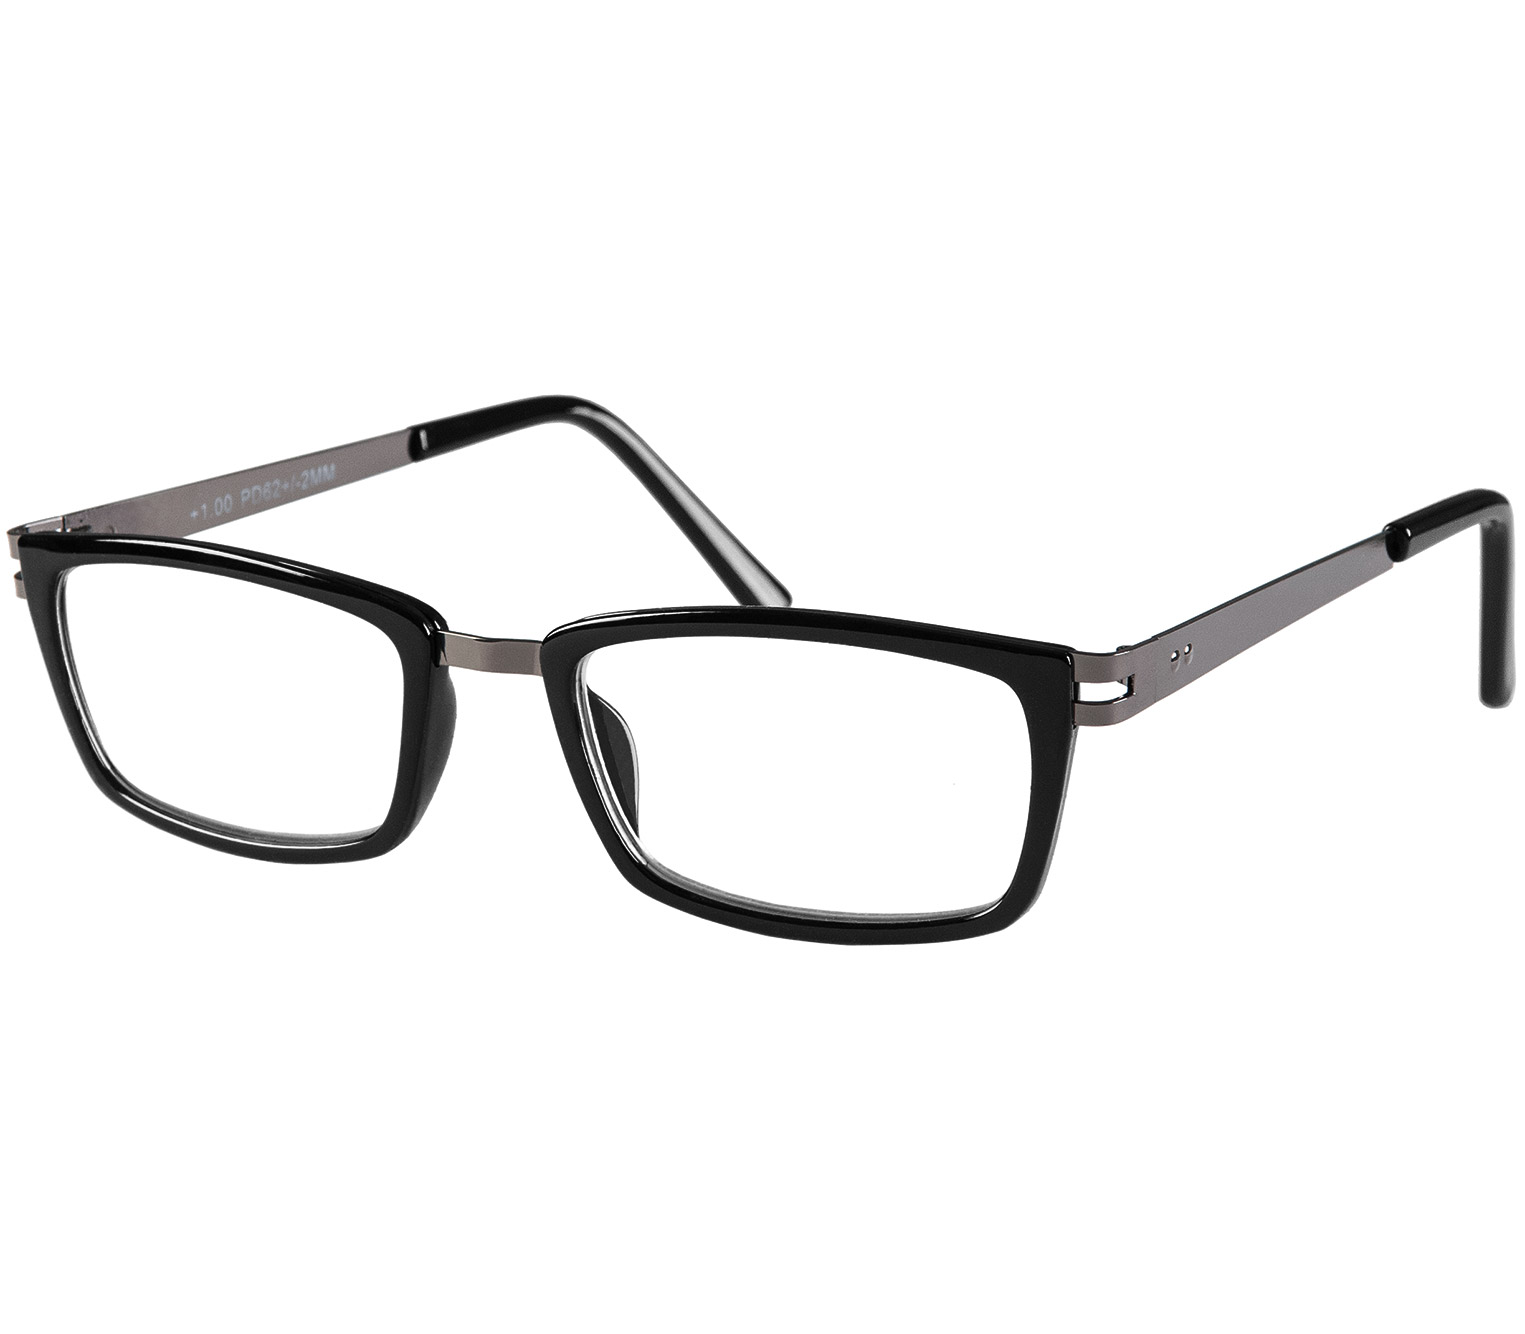 Main Image (Angle) - Midnight (Black) Reading Glasses